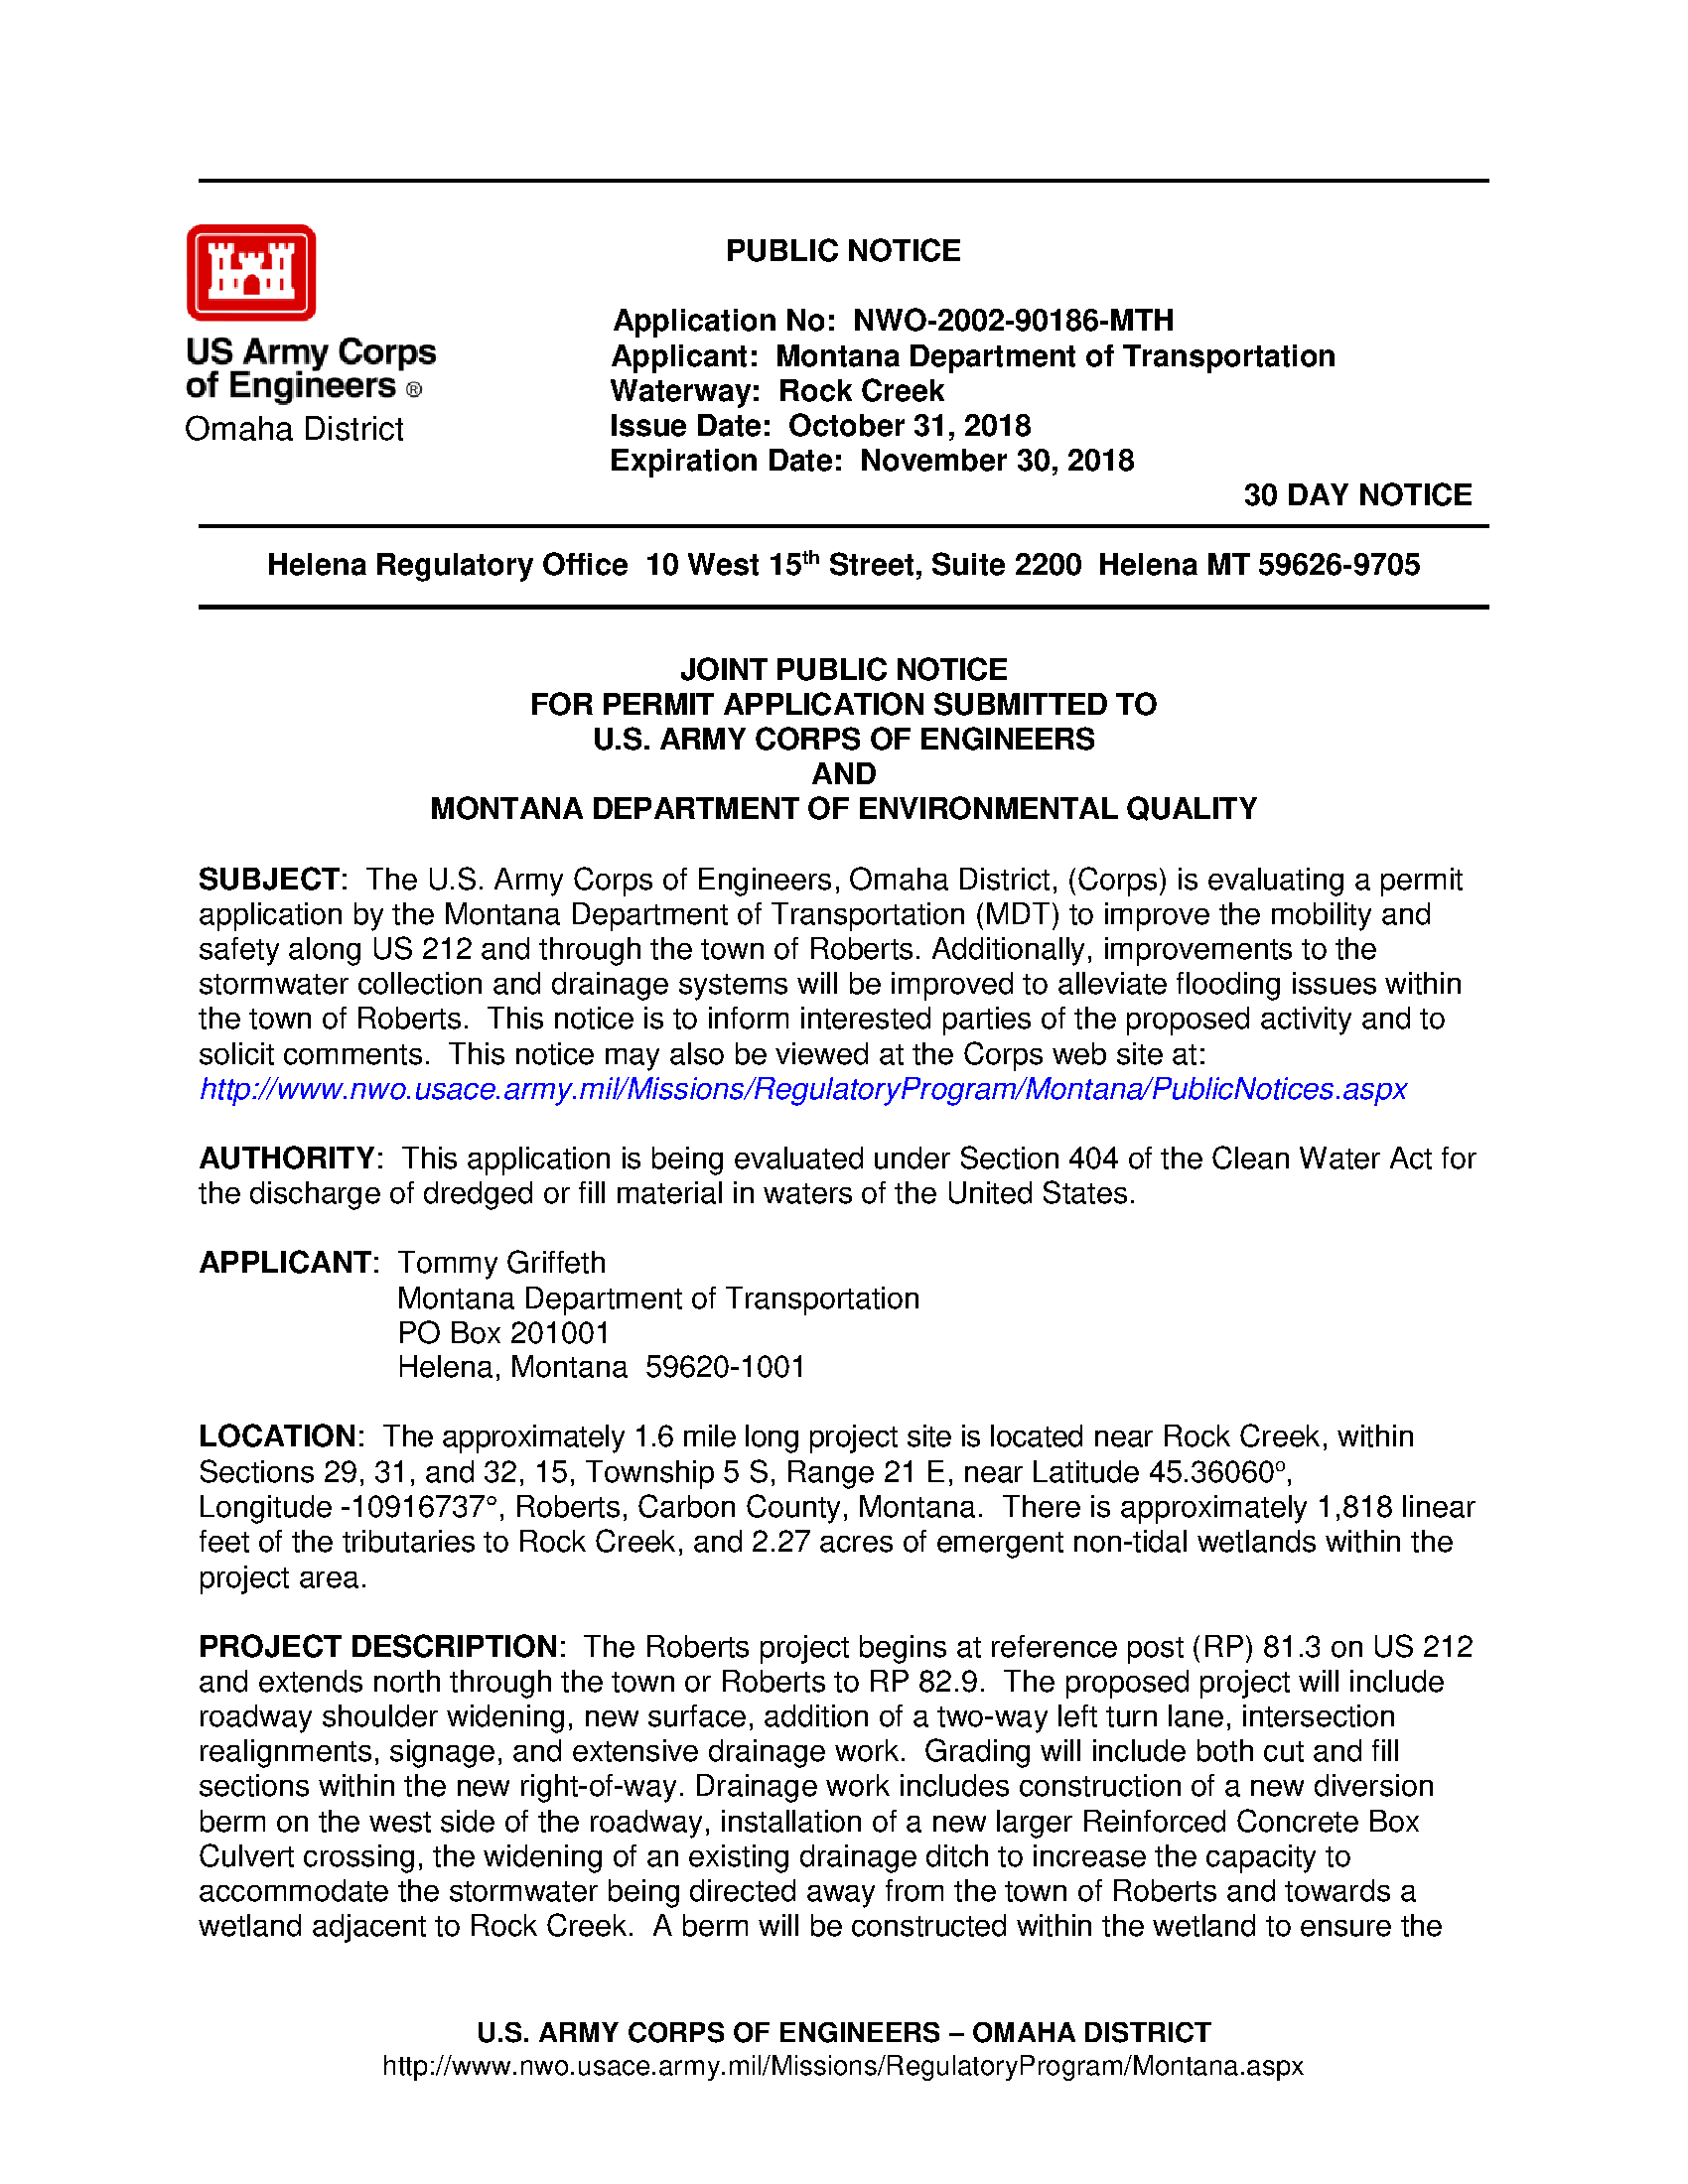 Public notice: Application no: NWO-2002-90186-MTH - Project